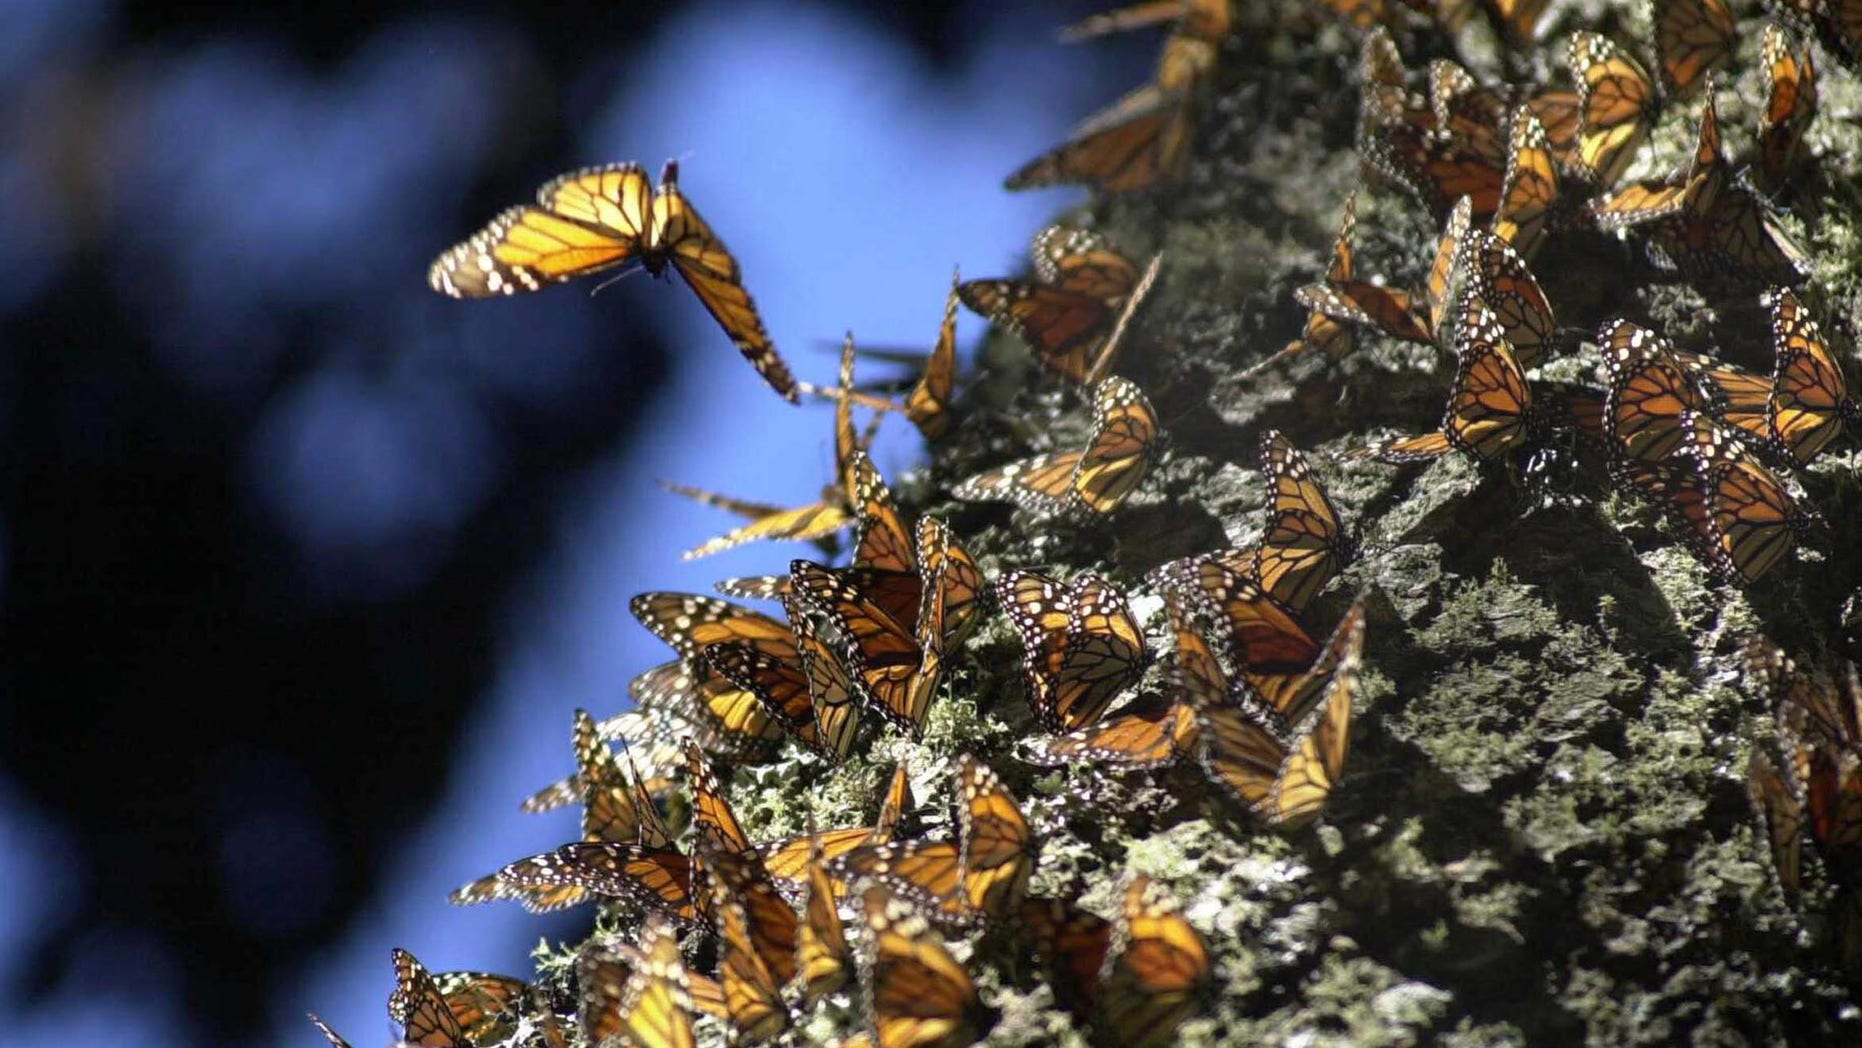 384897 02: Monarch butterflies gather on an Oyamel tree January 29, 2001 at the butterfly sanctuary in Michoacan, Mexico. Some 100 million or more of the orange and black butterflies migrate annually from Canada to the forest in Michoacan. (Photo by Susana Gonzalez/Newsmakers)